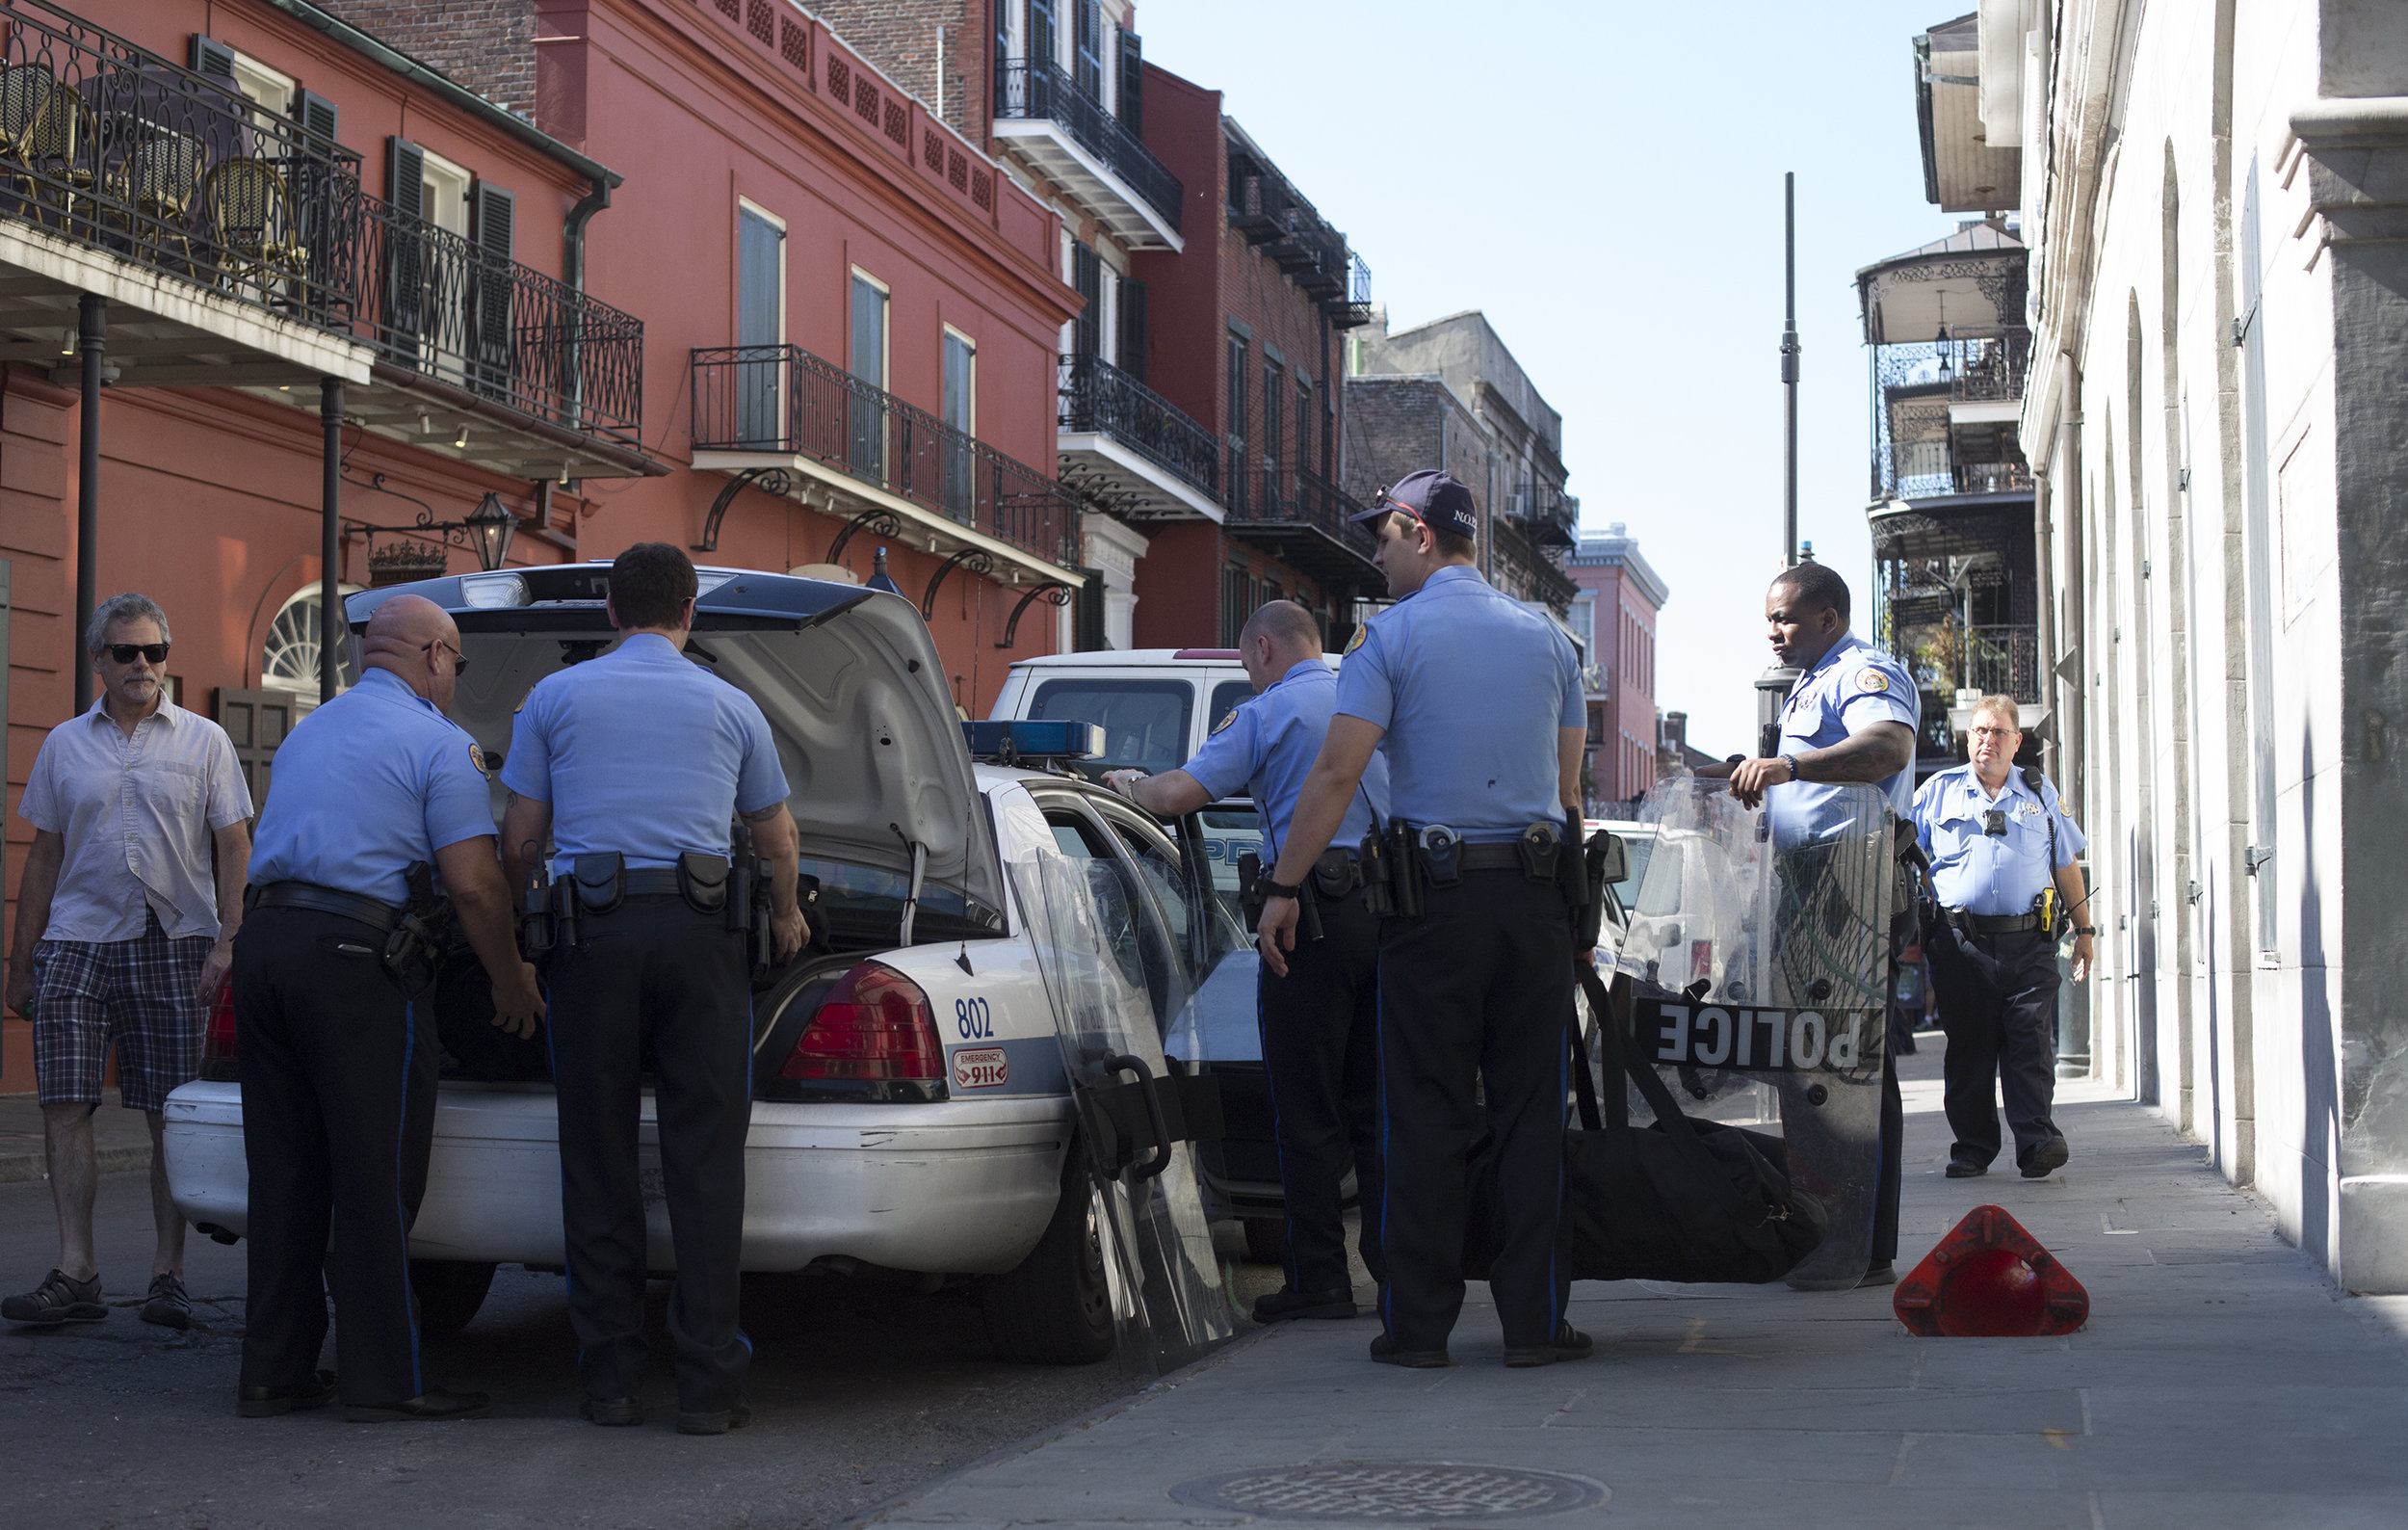 Members of the New Orleans Police Department, packing up riot gear after the Take 'Em Down NOLA protested concluded.